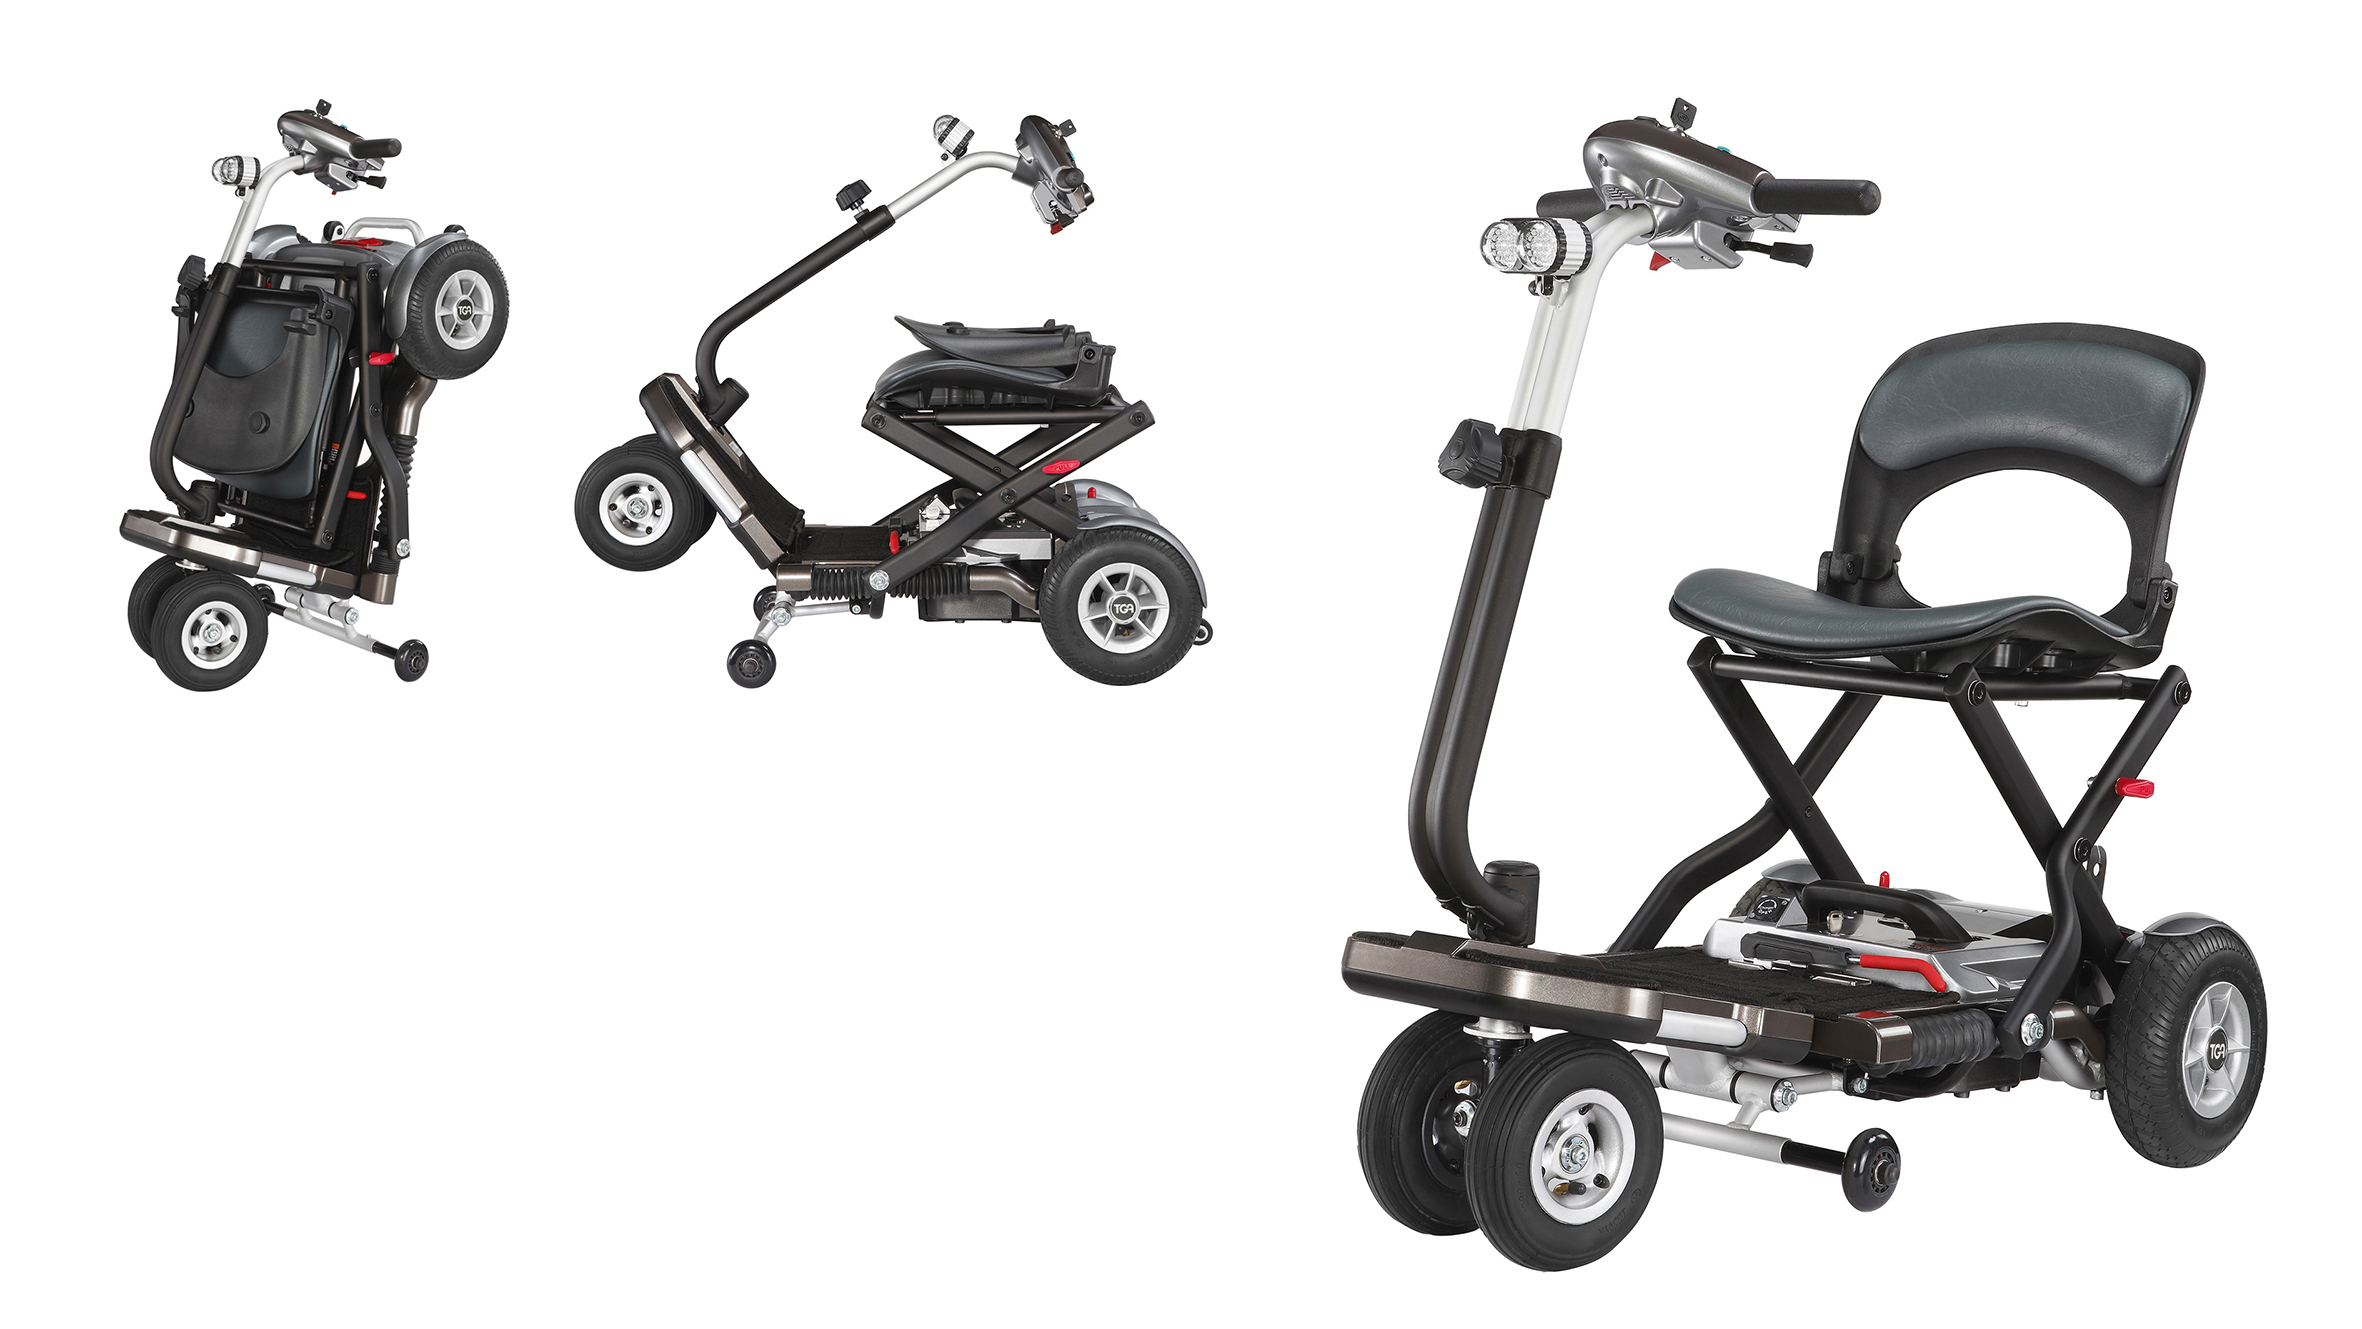 TGA to launch Folding Minimo Plus Mobility Scooter at Trade Days